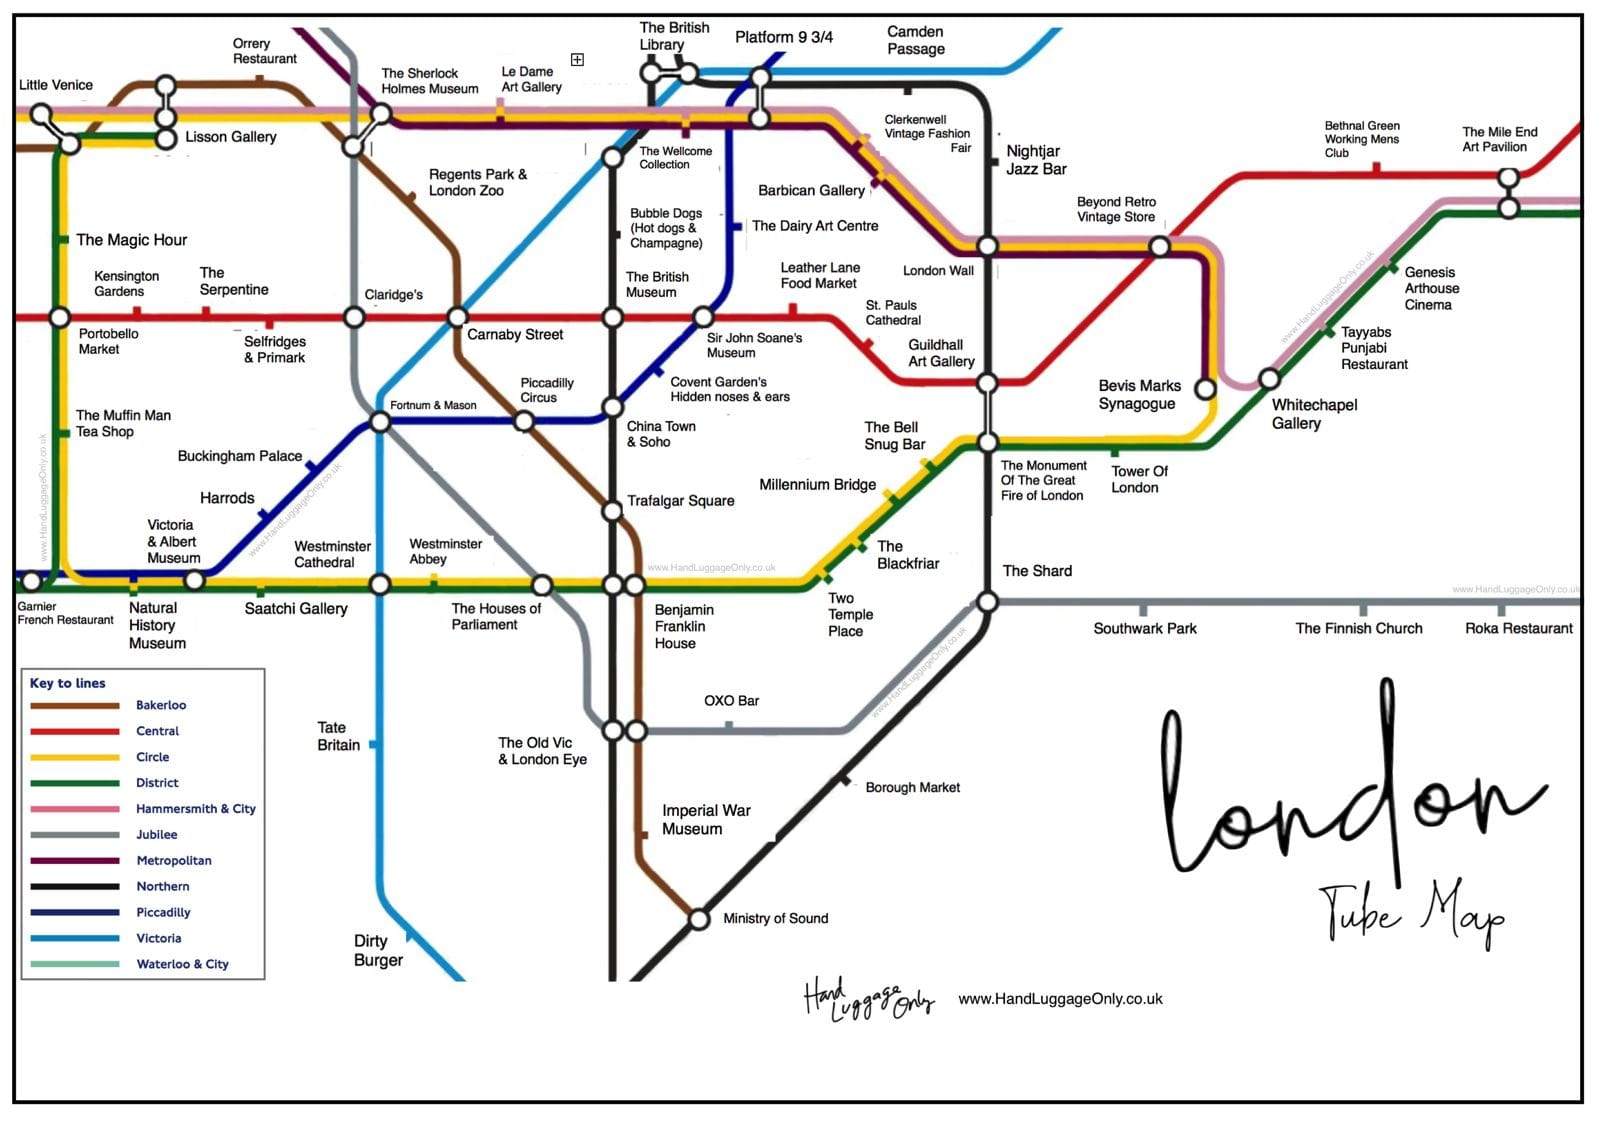 Map Of London With Neighborhoods.London Underground Map What To See At Each Stop Hand Luggage Only